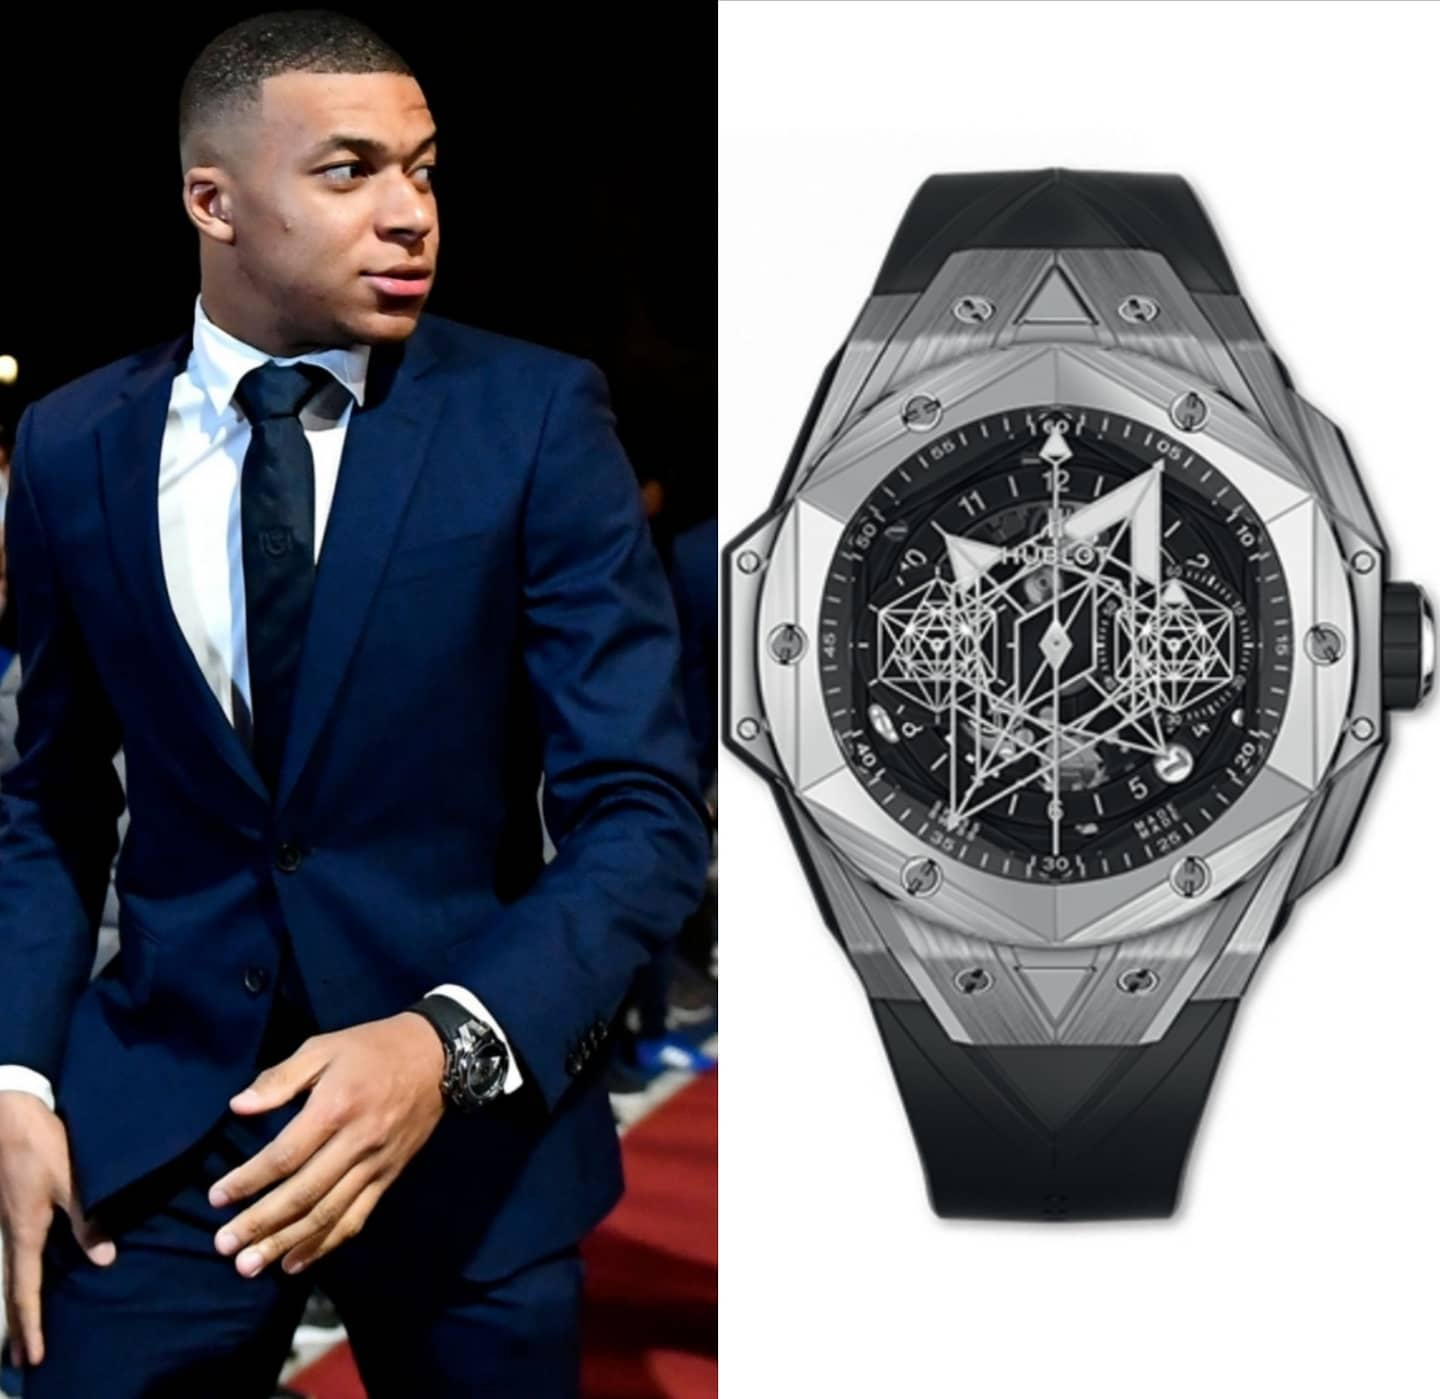 French International and @psg player Kylian Mbappé @k.mbappe, considered one of the best players in the world, spotted with a Titanium @hublot Big Bang Sang Bleu II, limited to 200 pieces world wide 🌎 � 24,000.00 📸